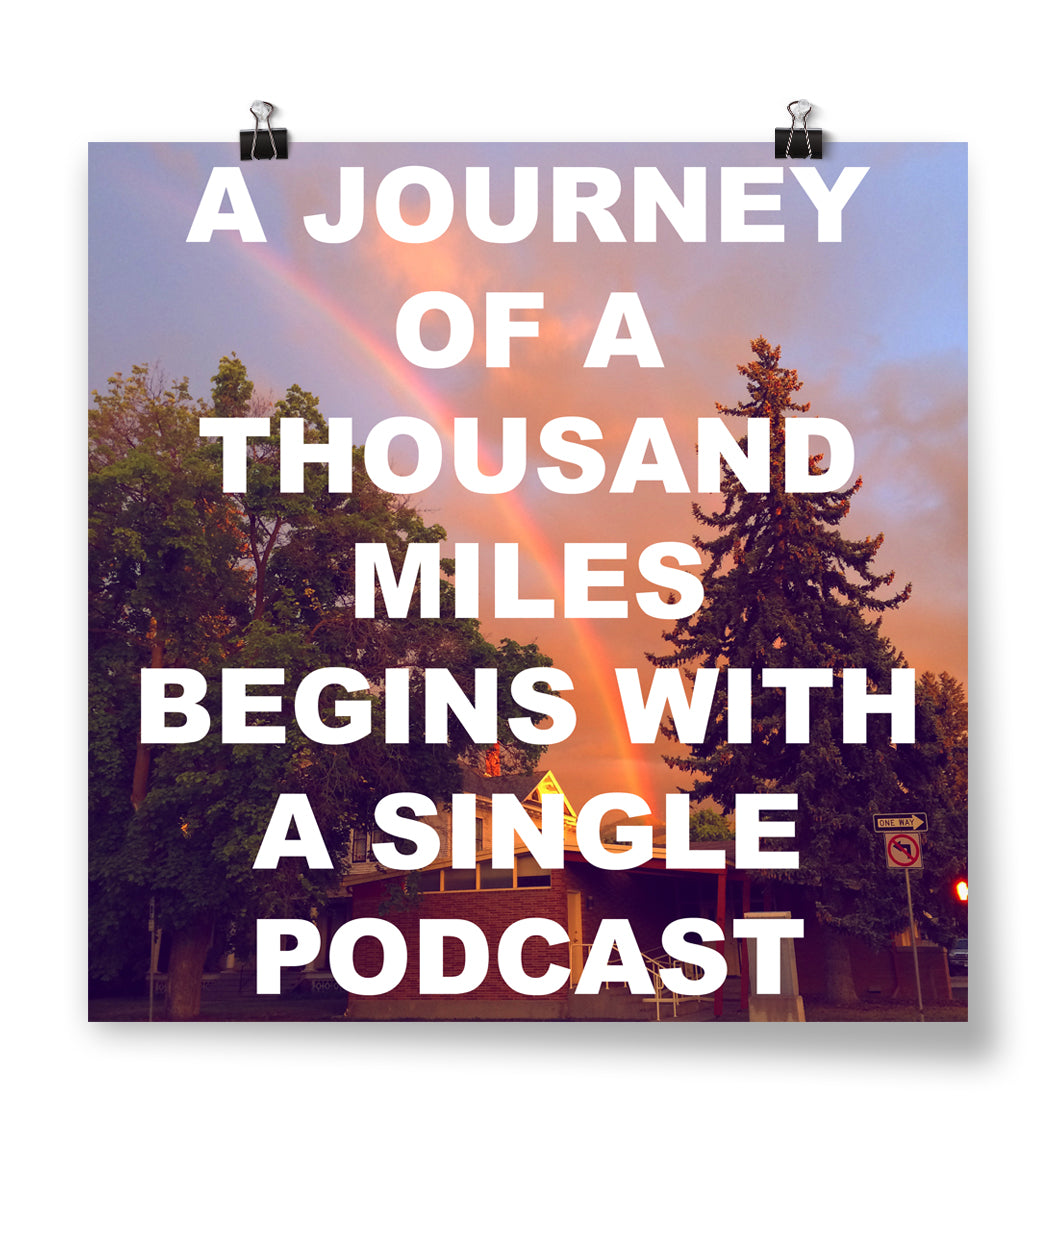 A Journey Of A Thousand Miles Begins With A Single Podcast Poster